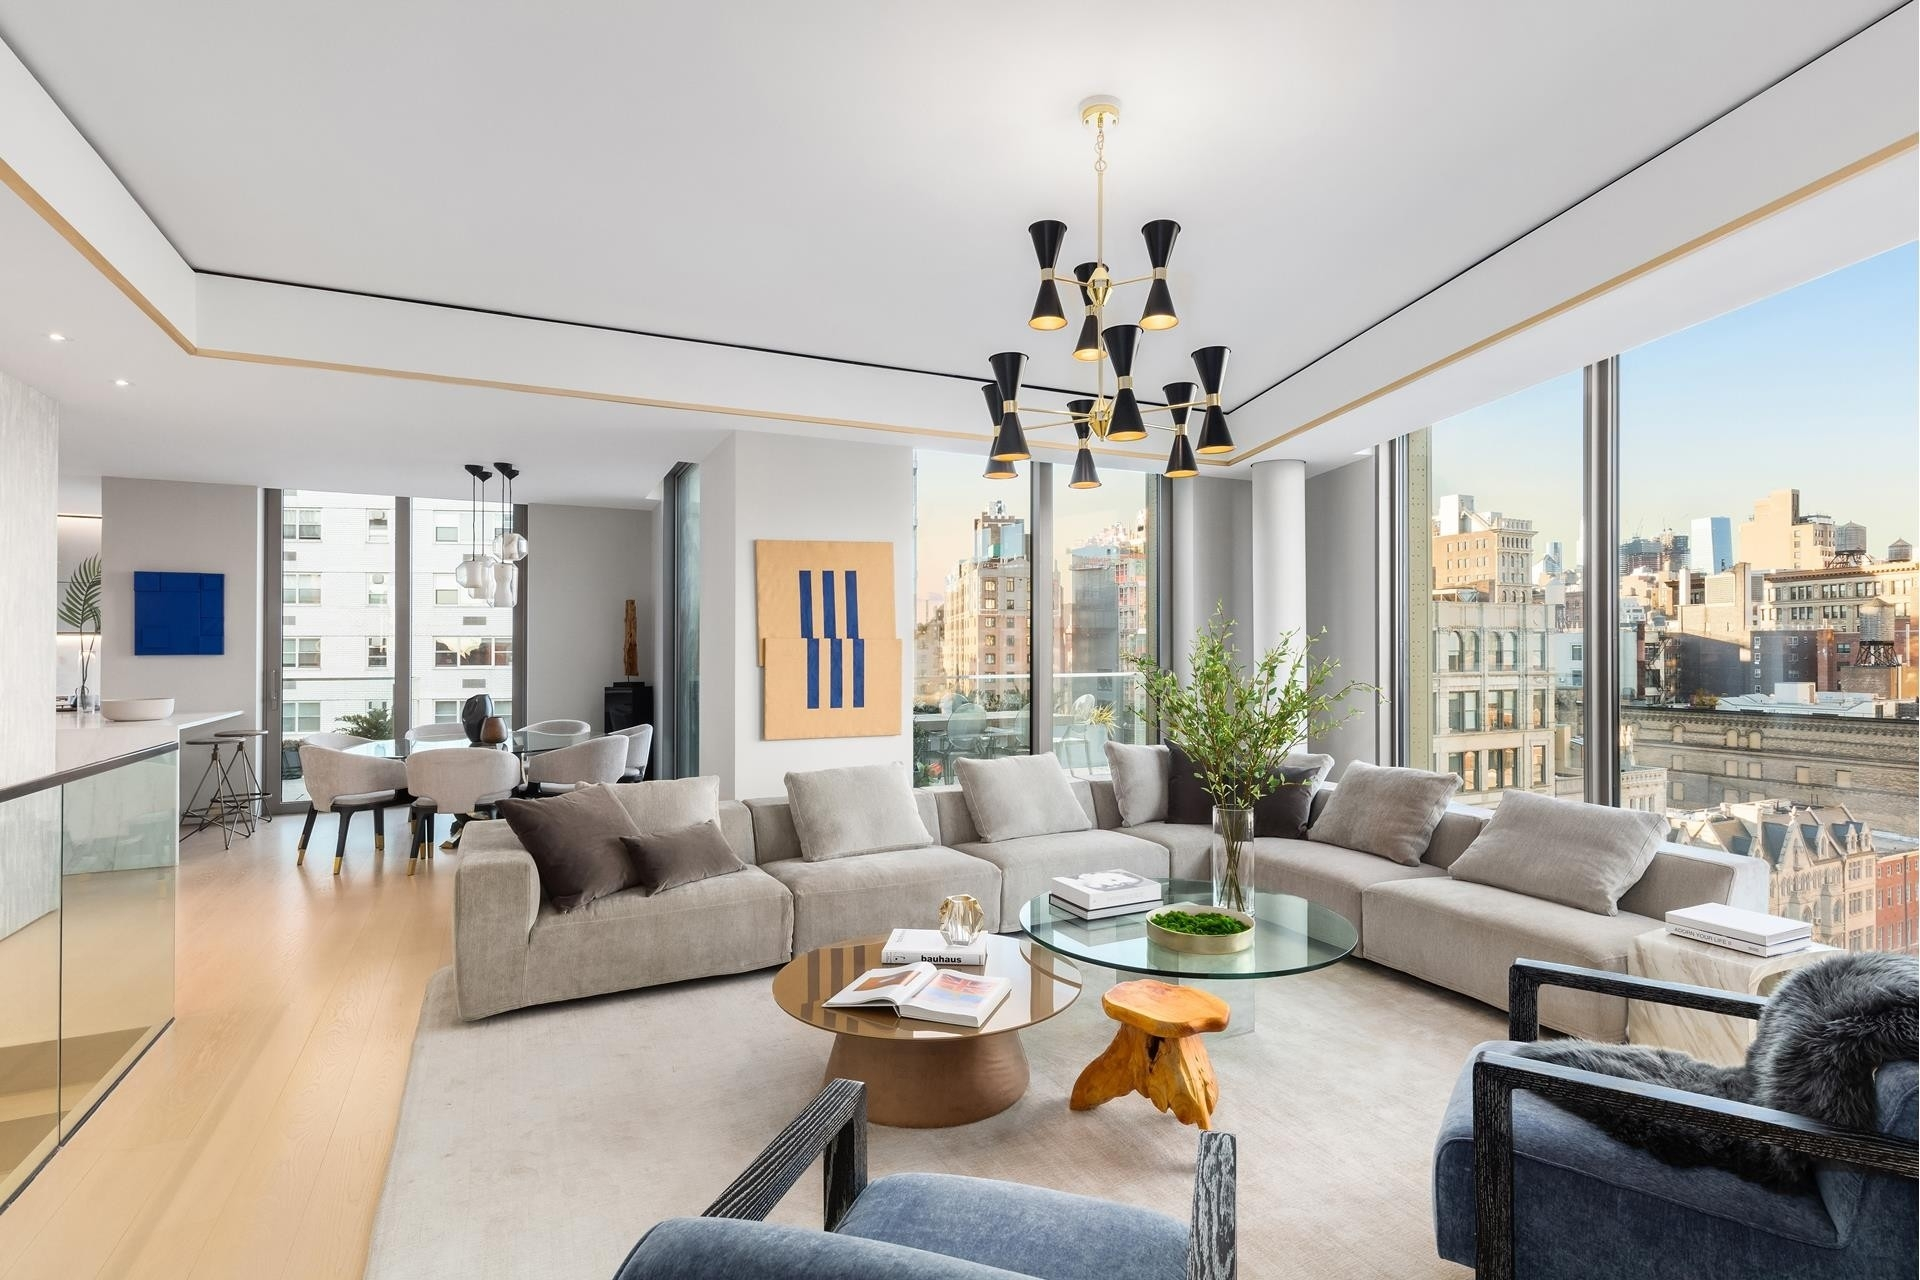 Condominium for Sale at 80 E 10TH ST , PH East Village, New York, NY 10003